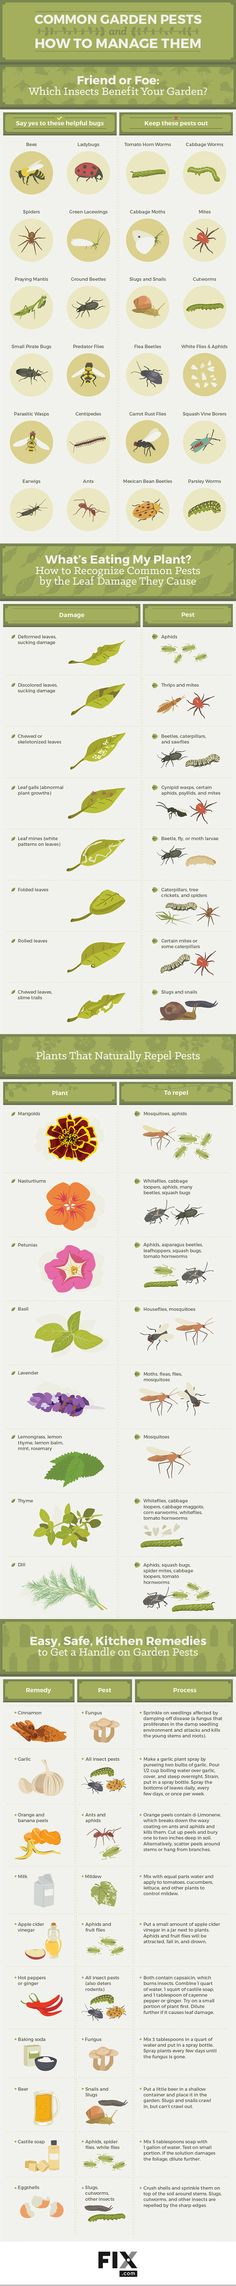 Garden, Tea, Cakes and Me: Common Garden Pests and How to Manage Them Infogra...